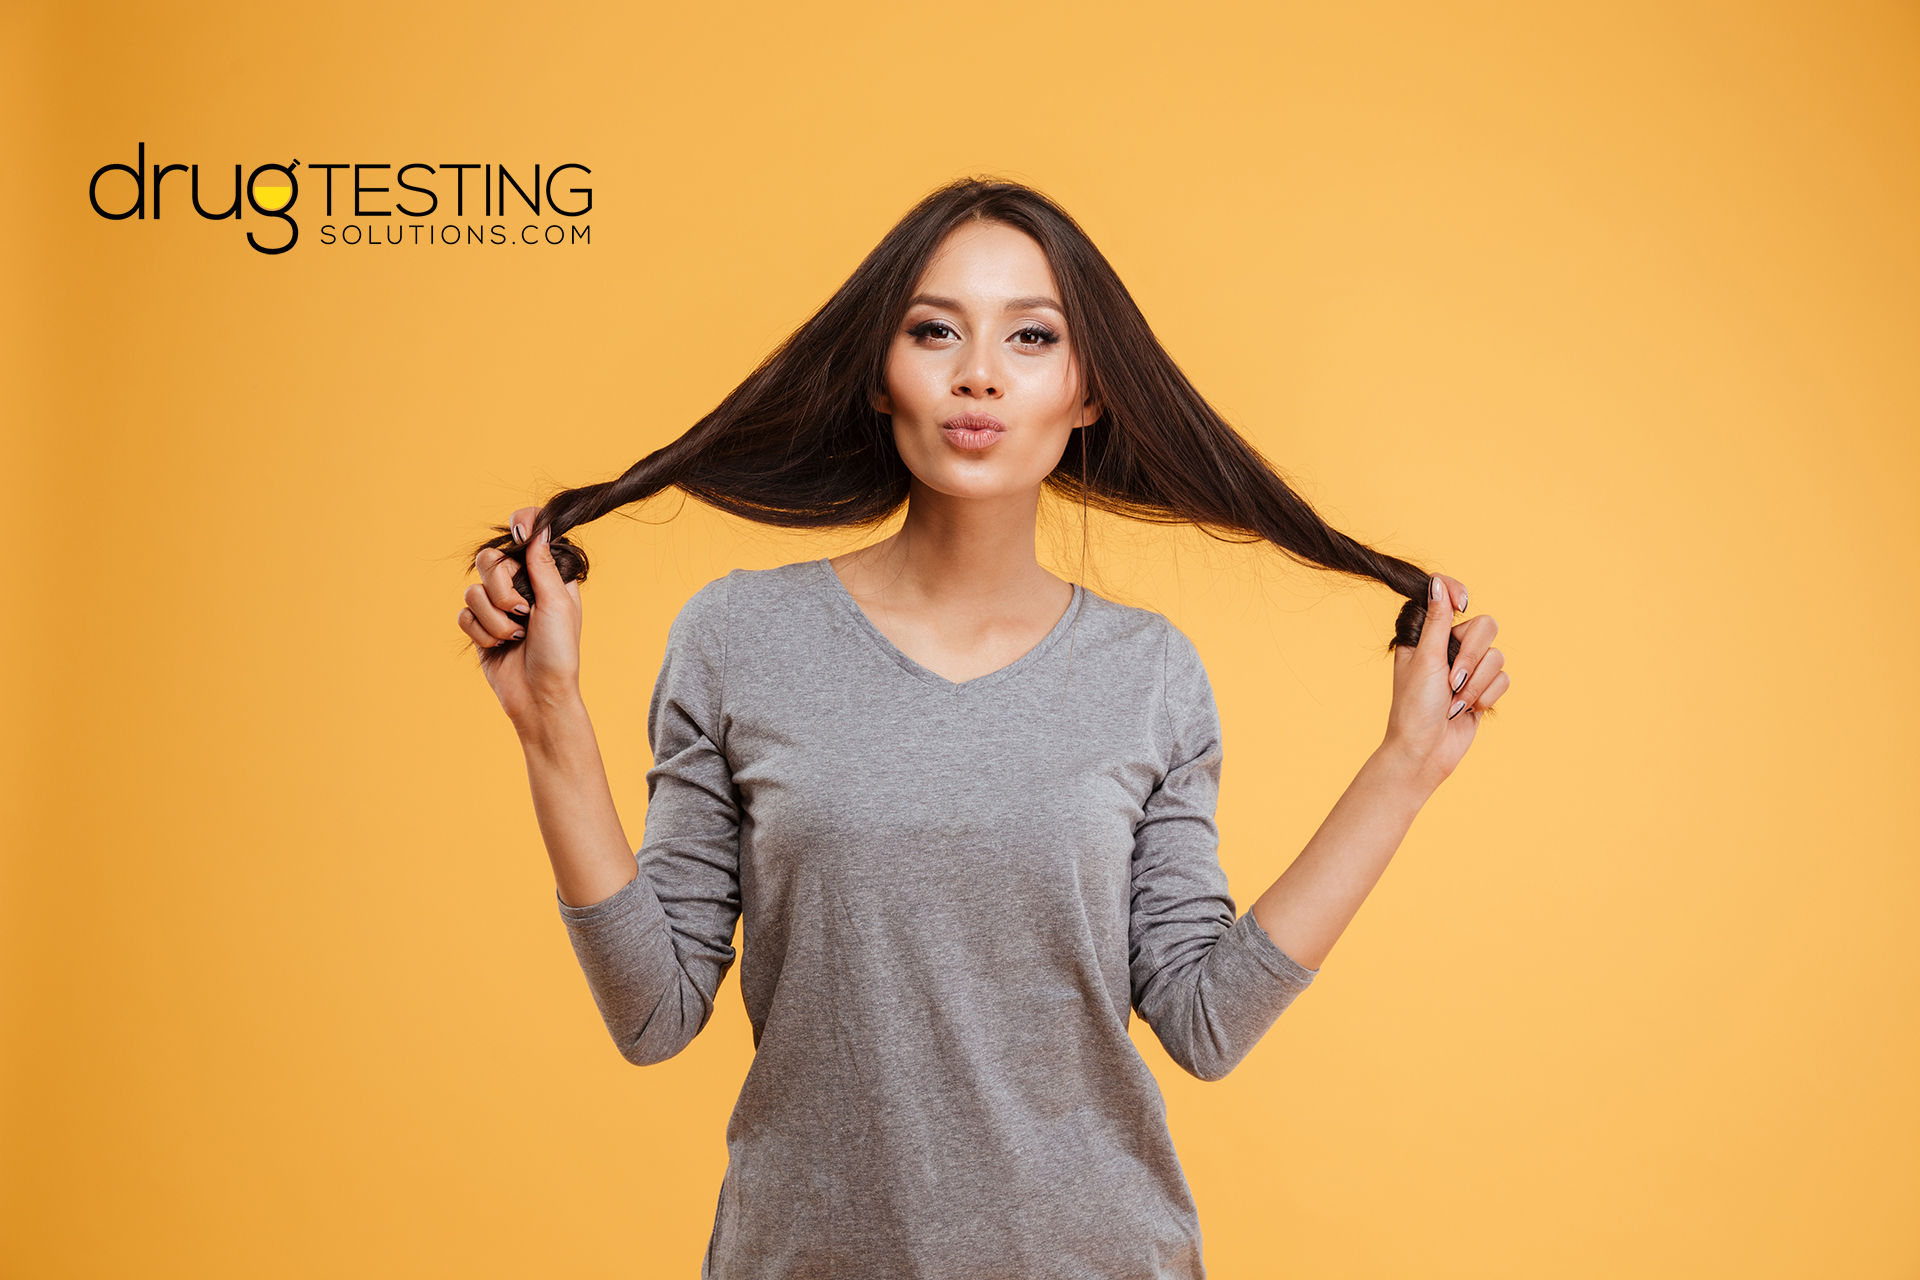 Hair Drug Test l How Long Does Weed Stay In Your Hair?